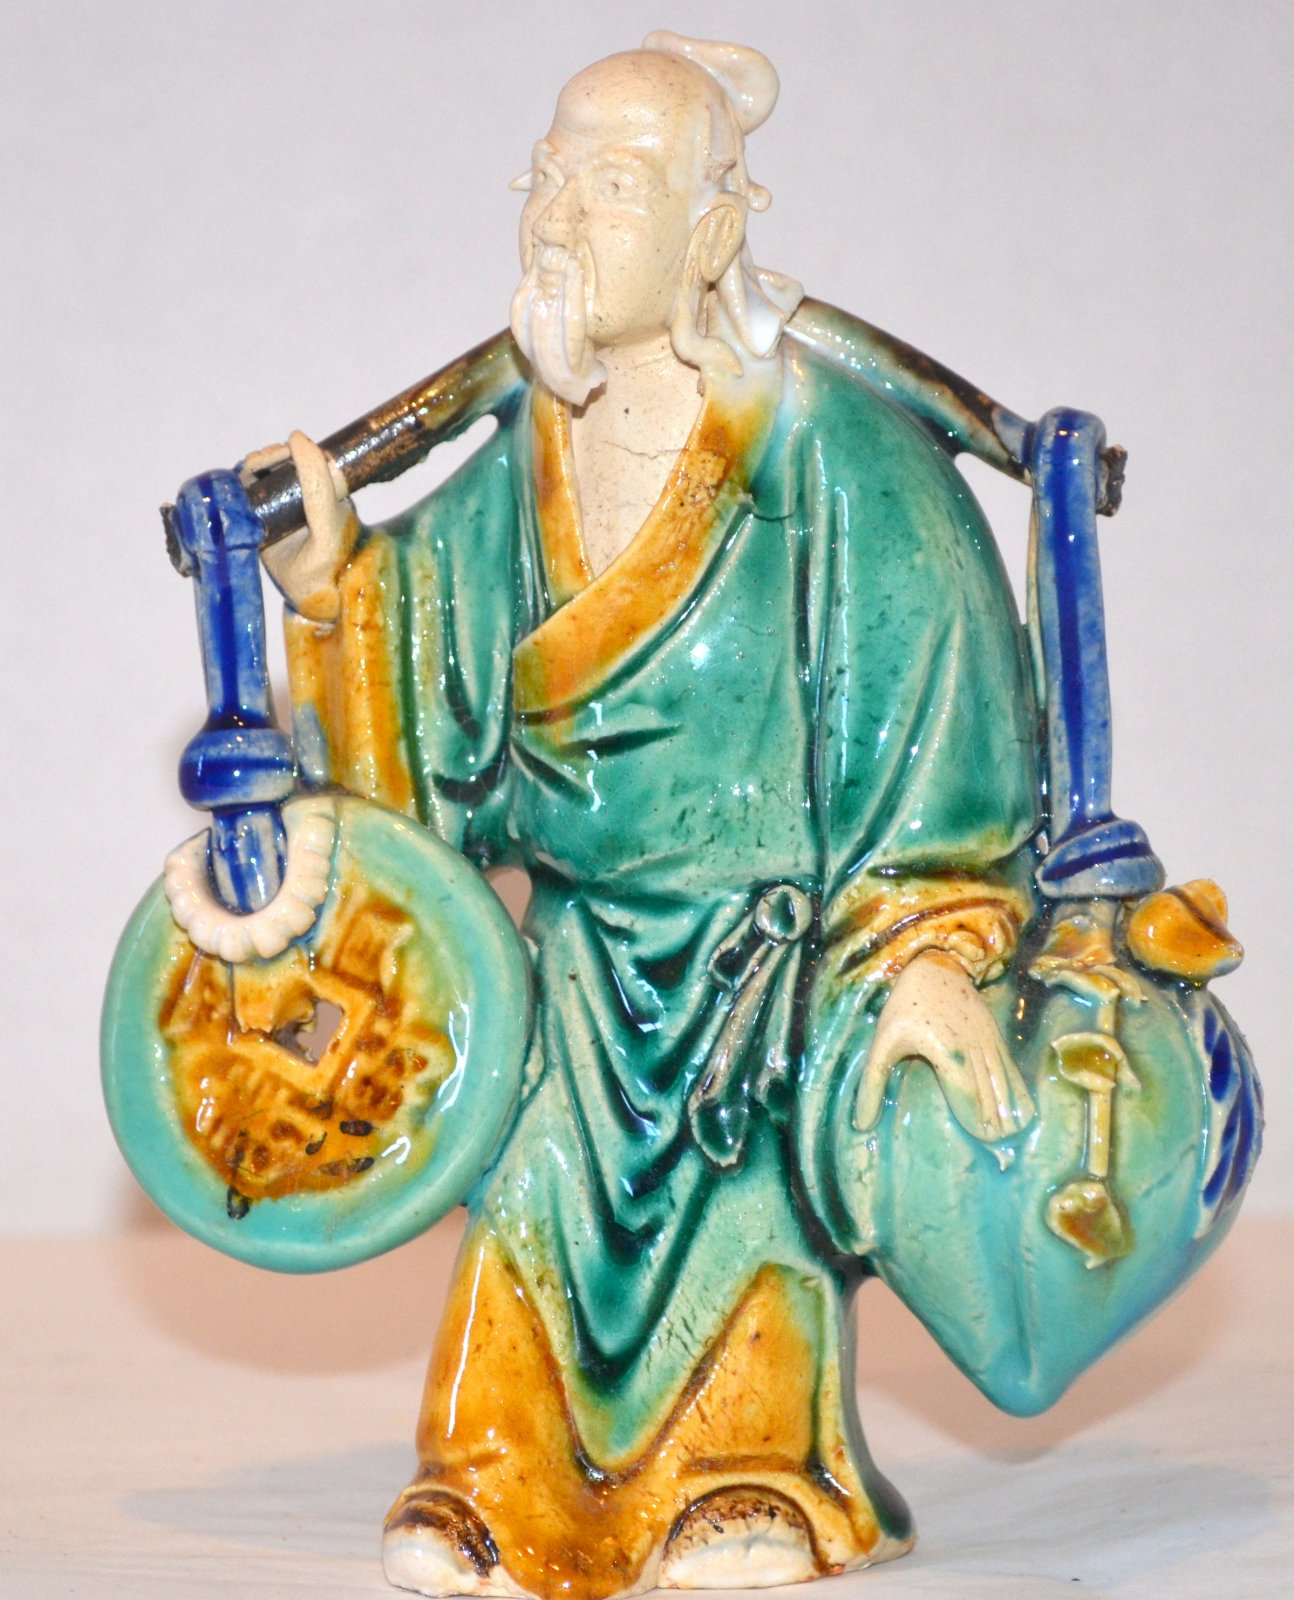 Chinese Mud Man Ceramic with a shoulder yoke carrying money and a peach